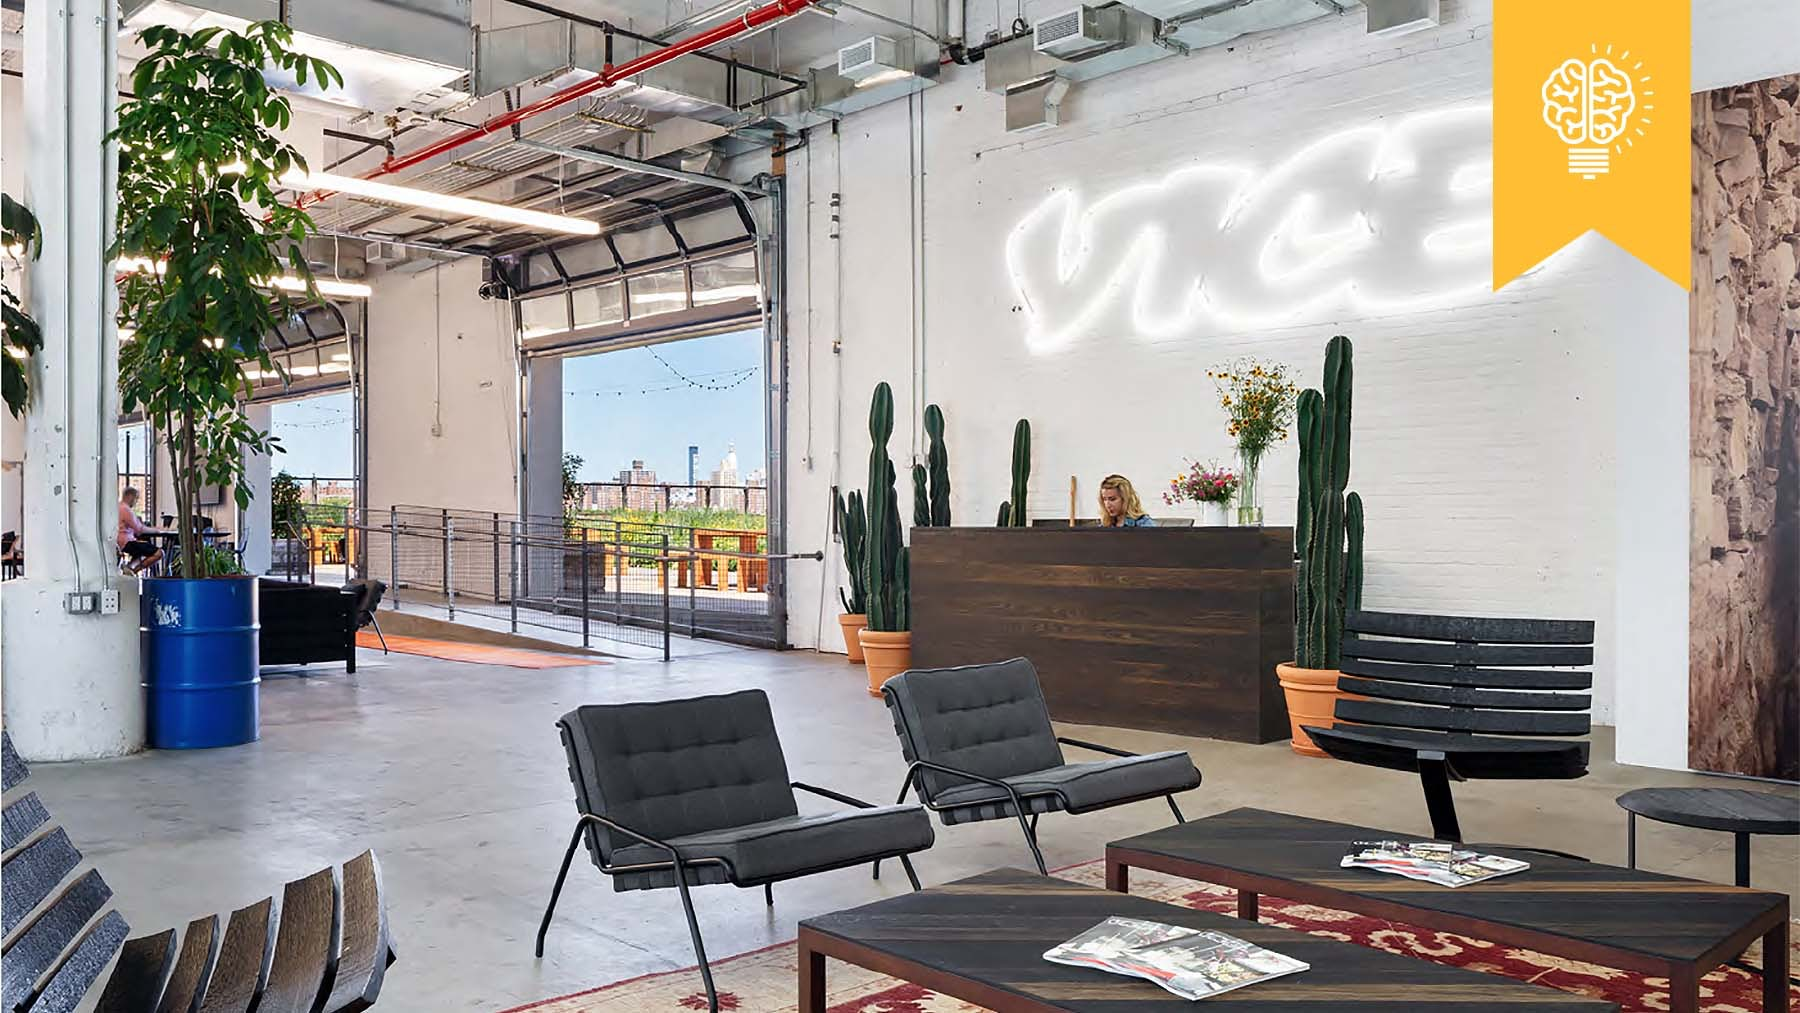 Vice office in Williamsburg, New York | Source: Vice